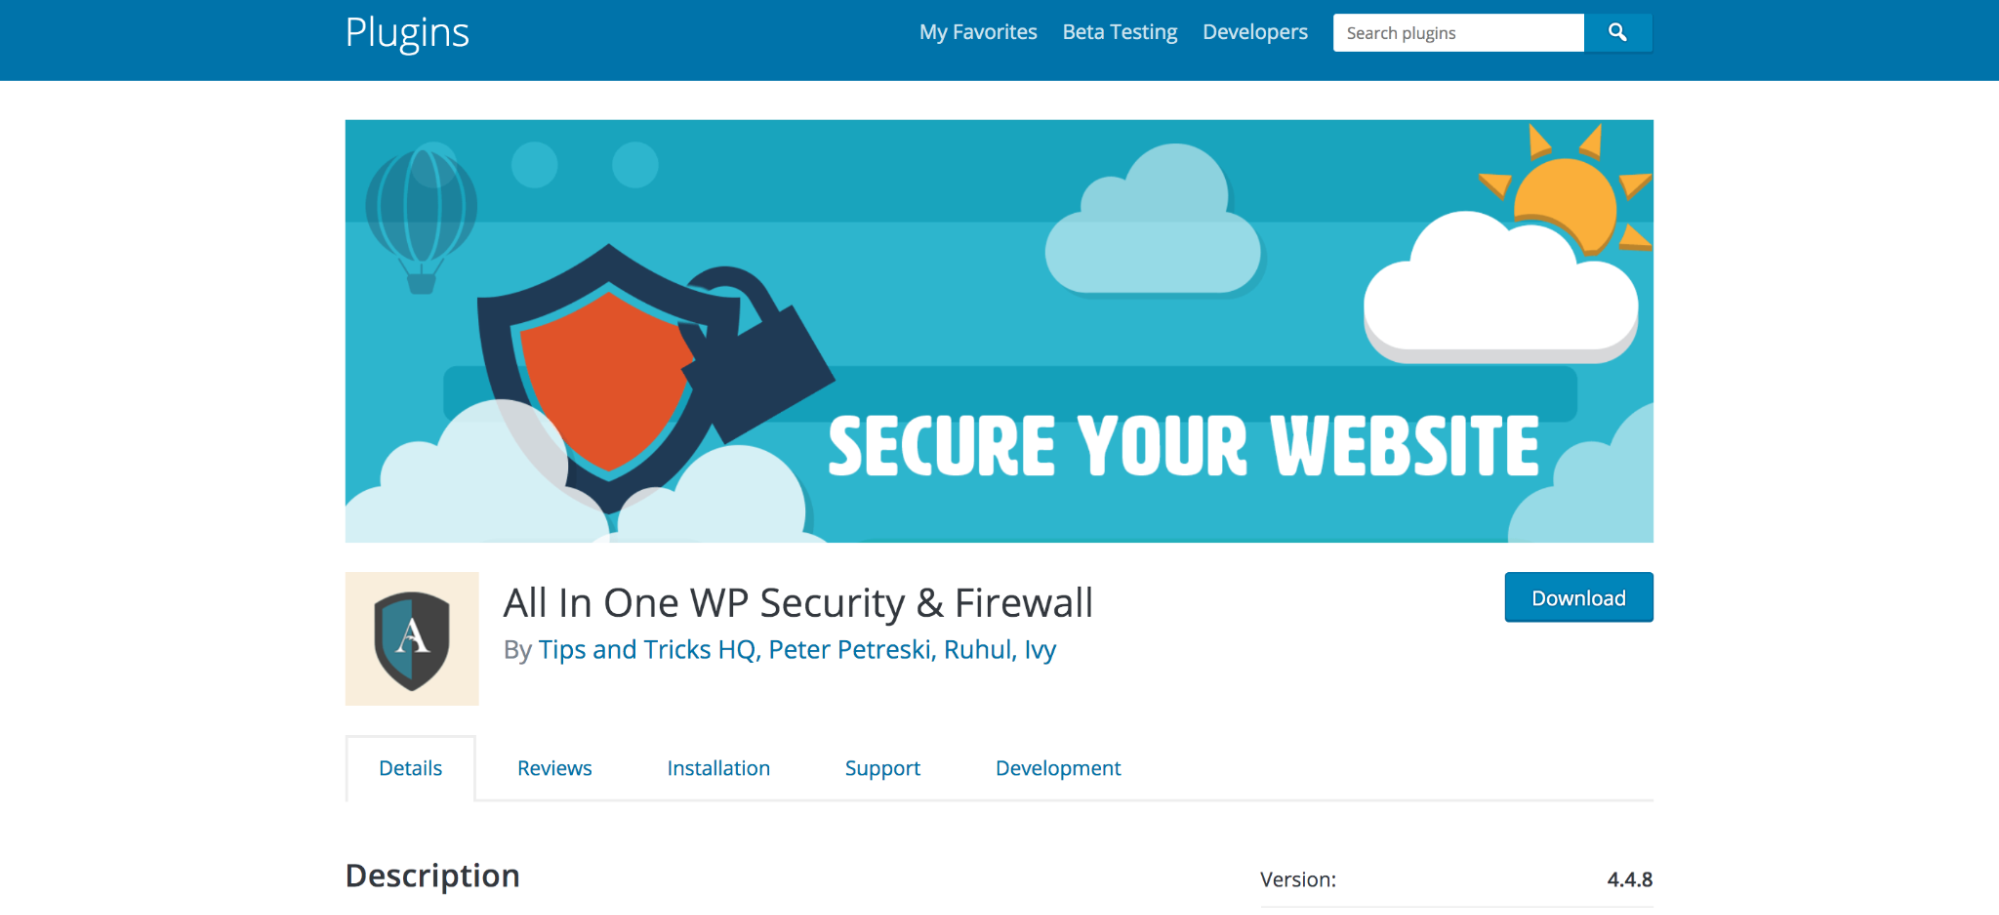 All in One WP Security & Firewall listed in the WordPress repository